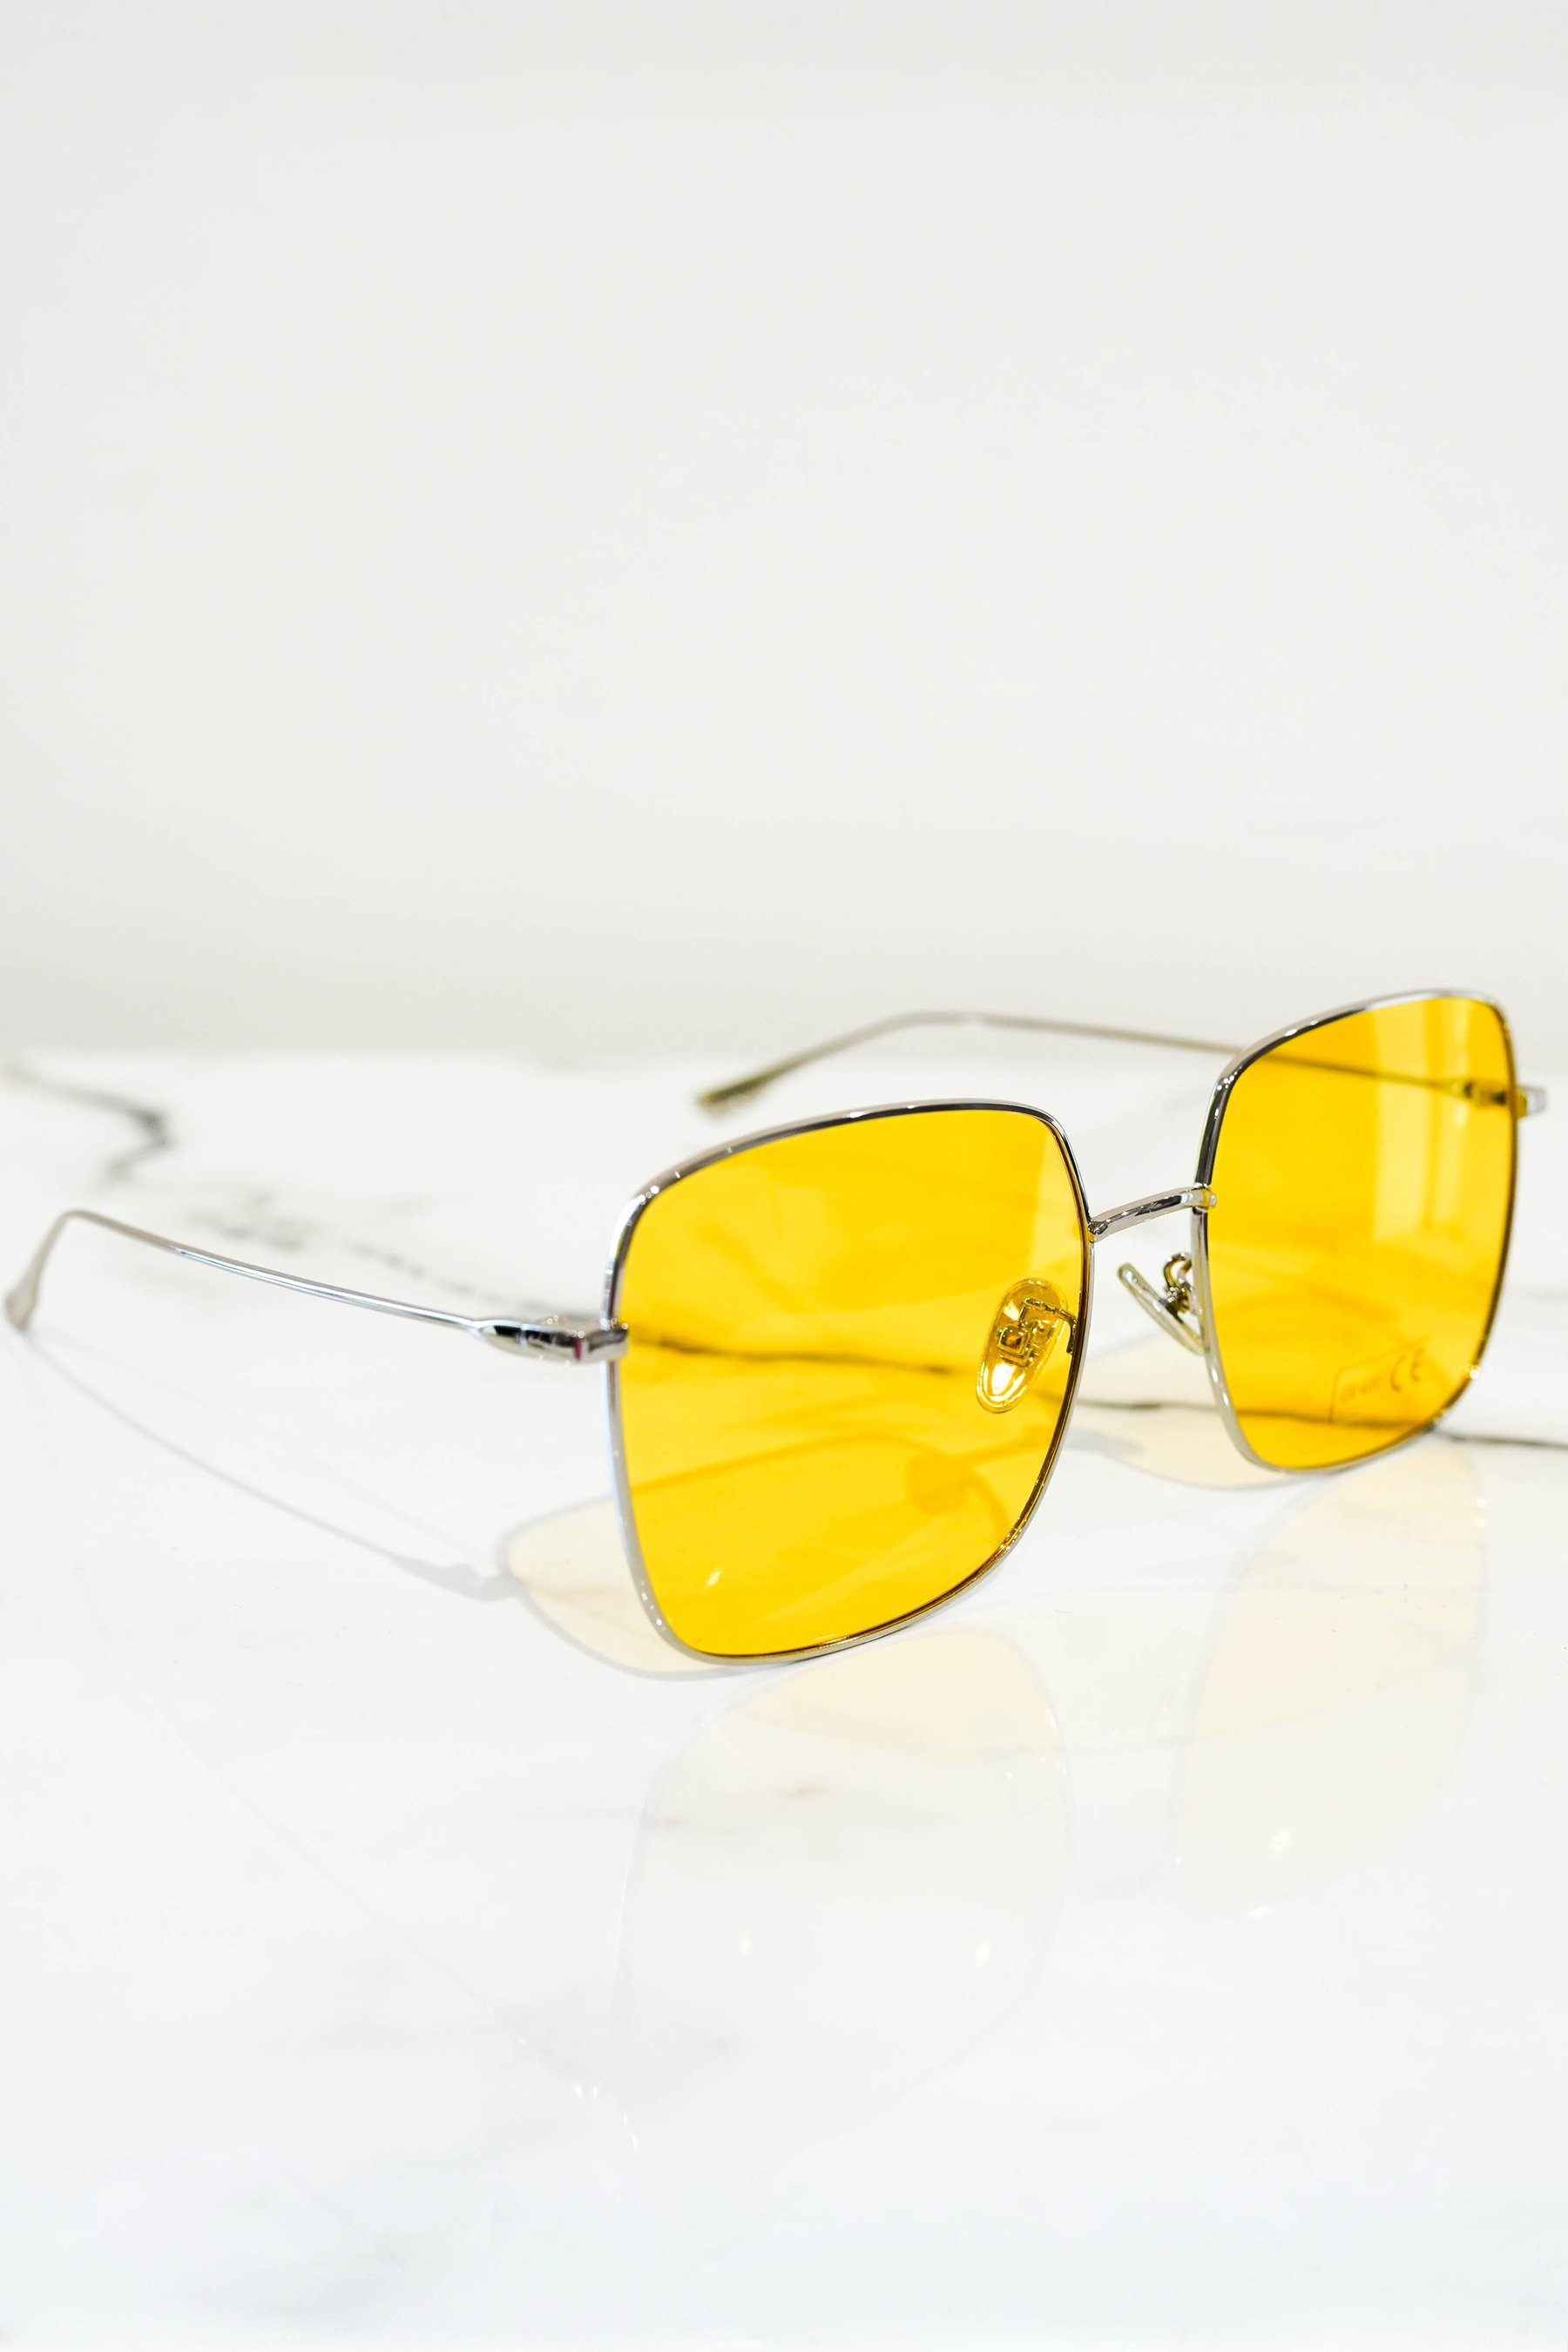 Squared sunglasses silver With yellow lens